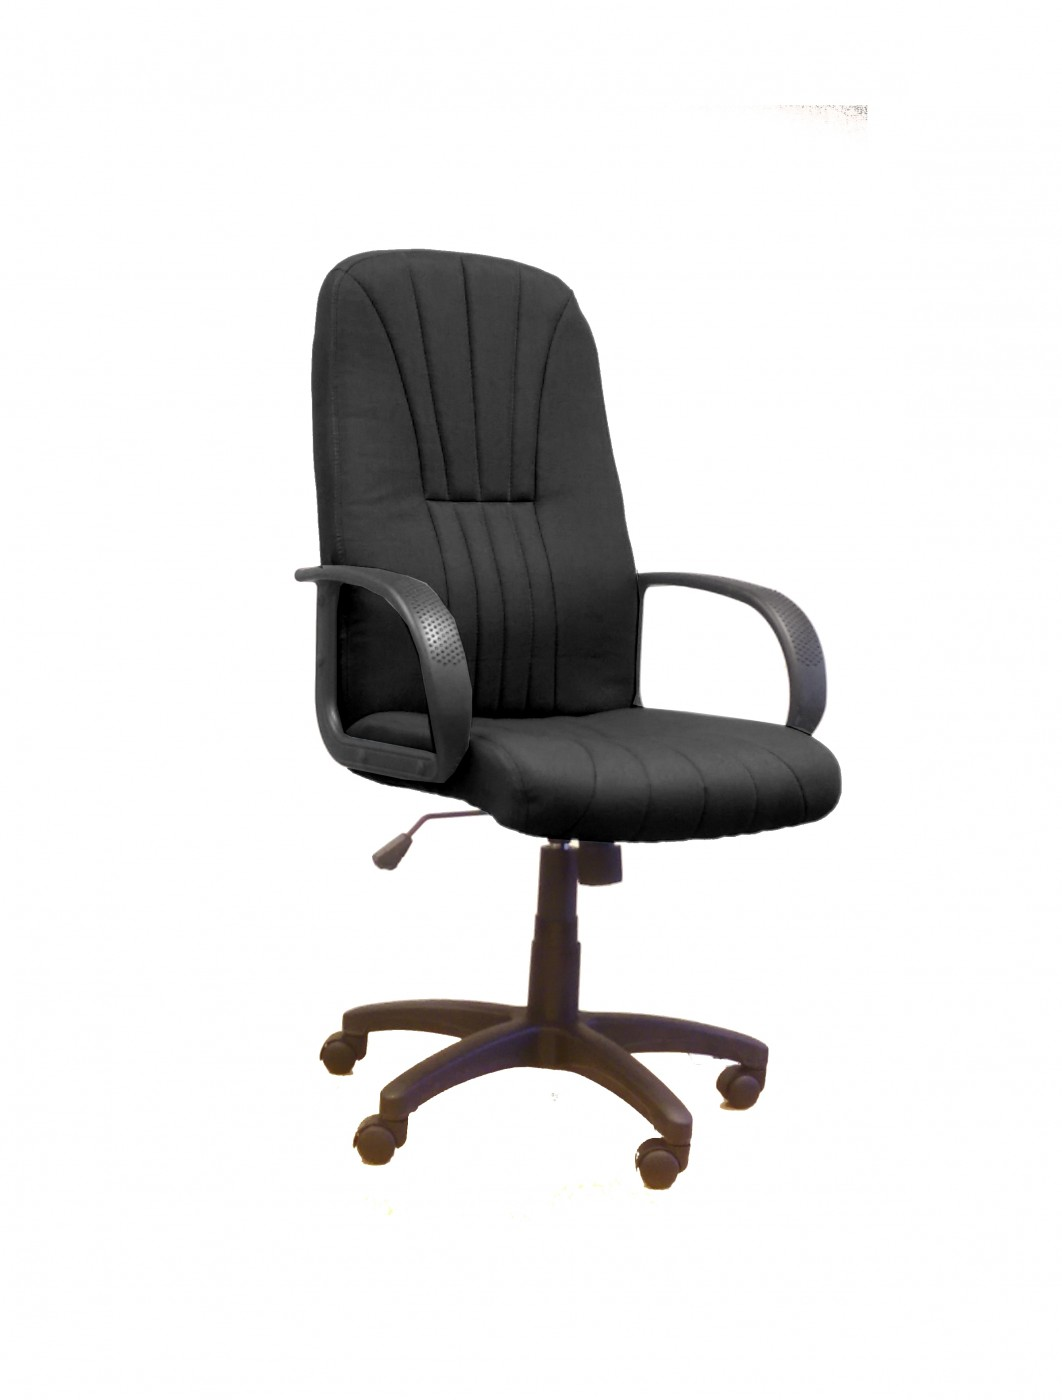 High back fabric office chair - Pluto Fabric High Back Executive Office Chair Bcf S511 Enlarged View